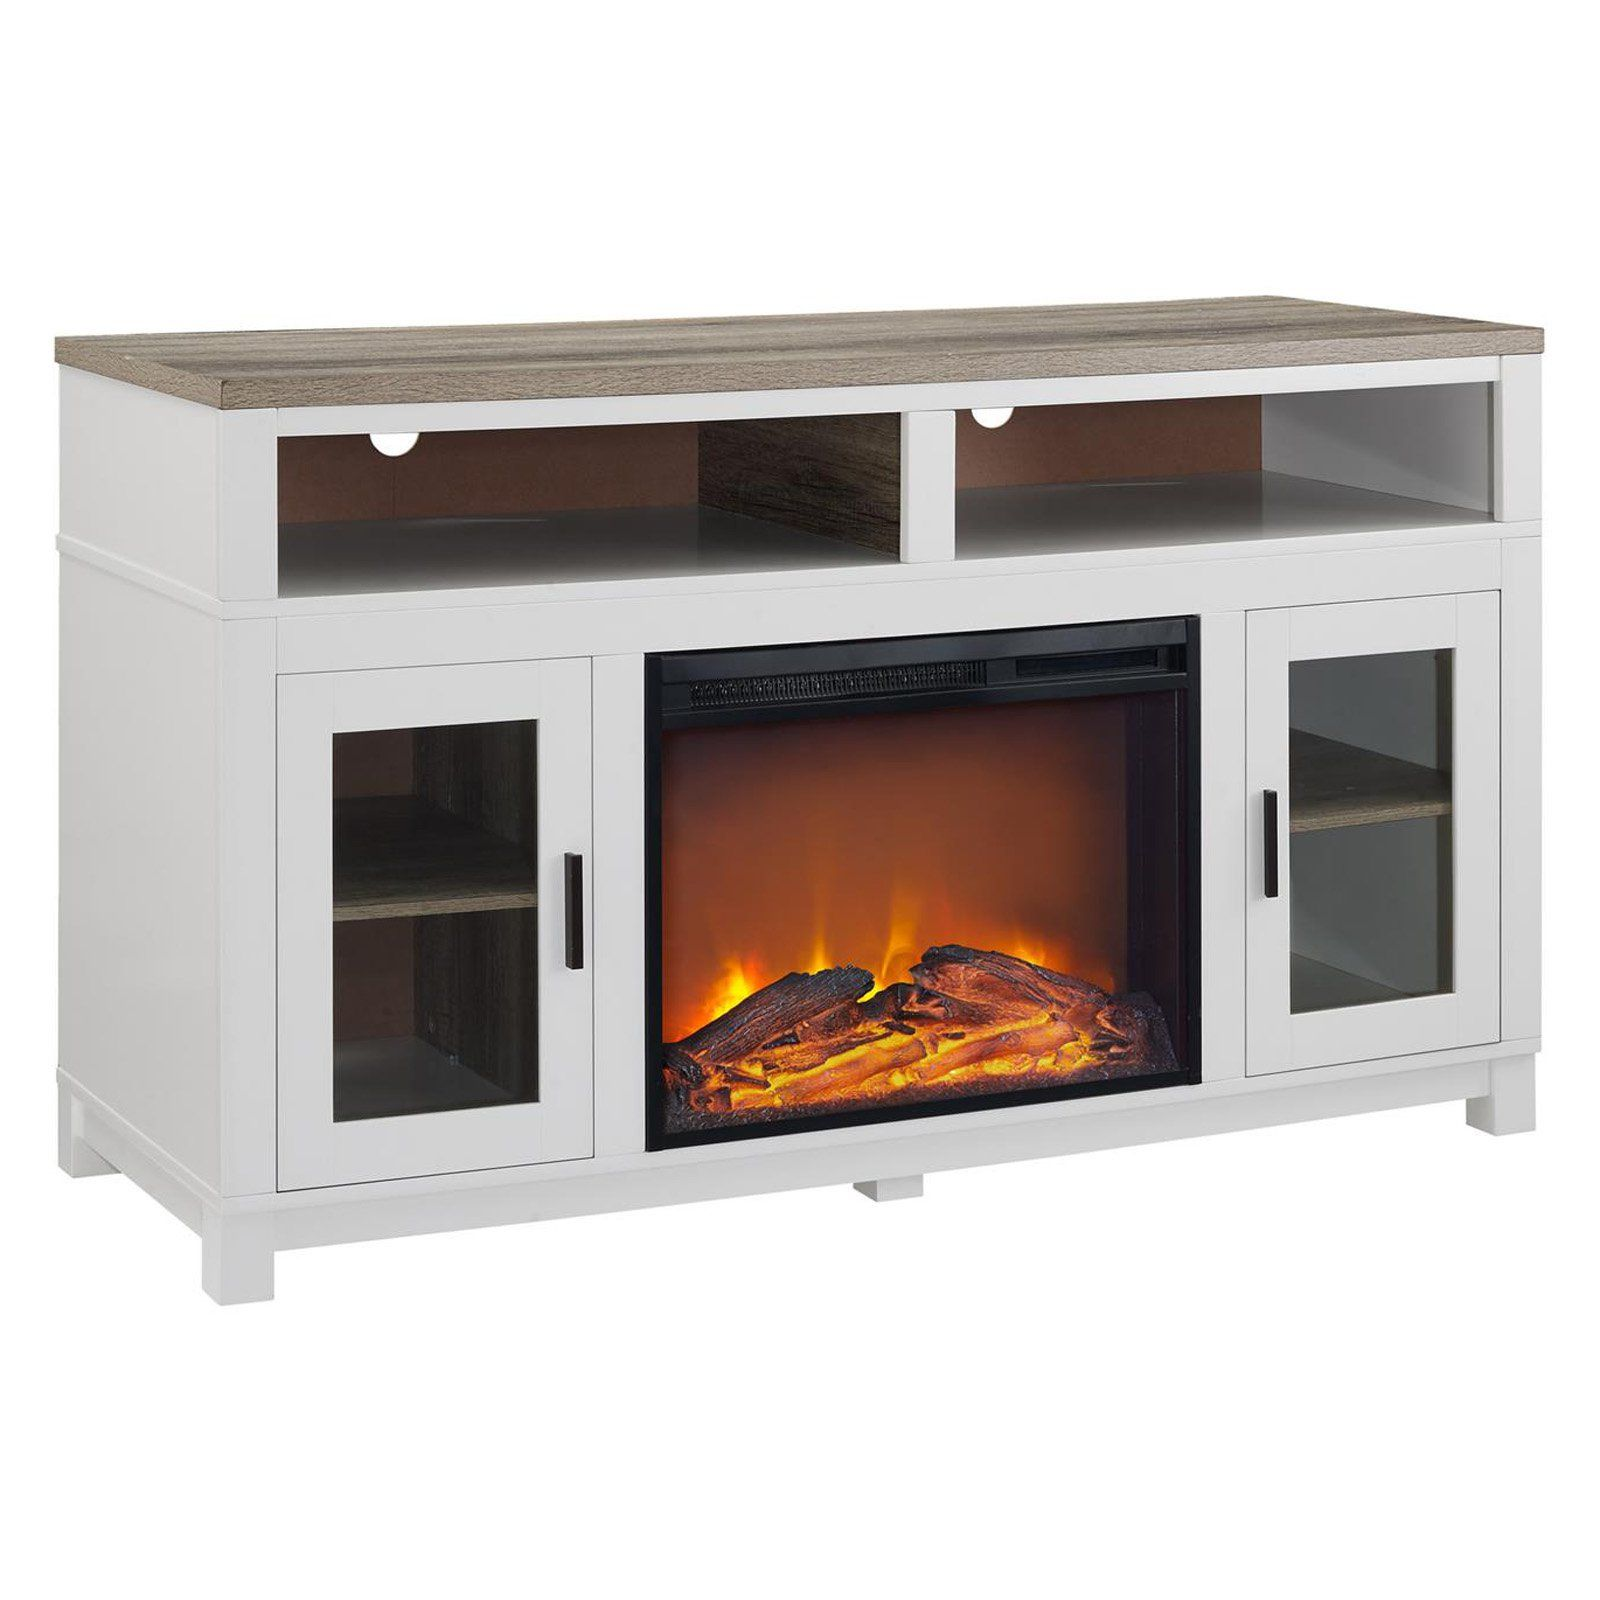 Ameriwood Home Carver Electric Fireplace Tv Stand White Fireplace Tv Stand Electric Fireplace Tv Stand White